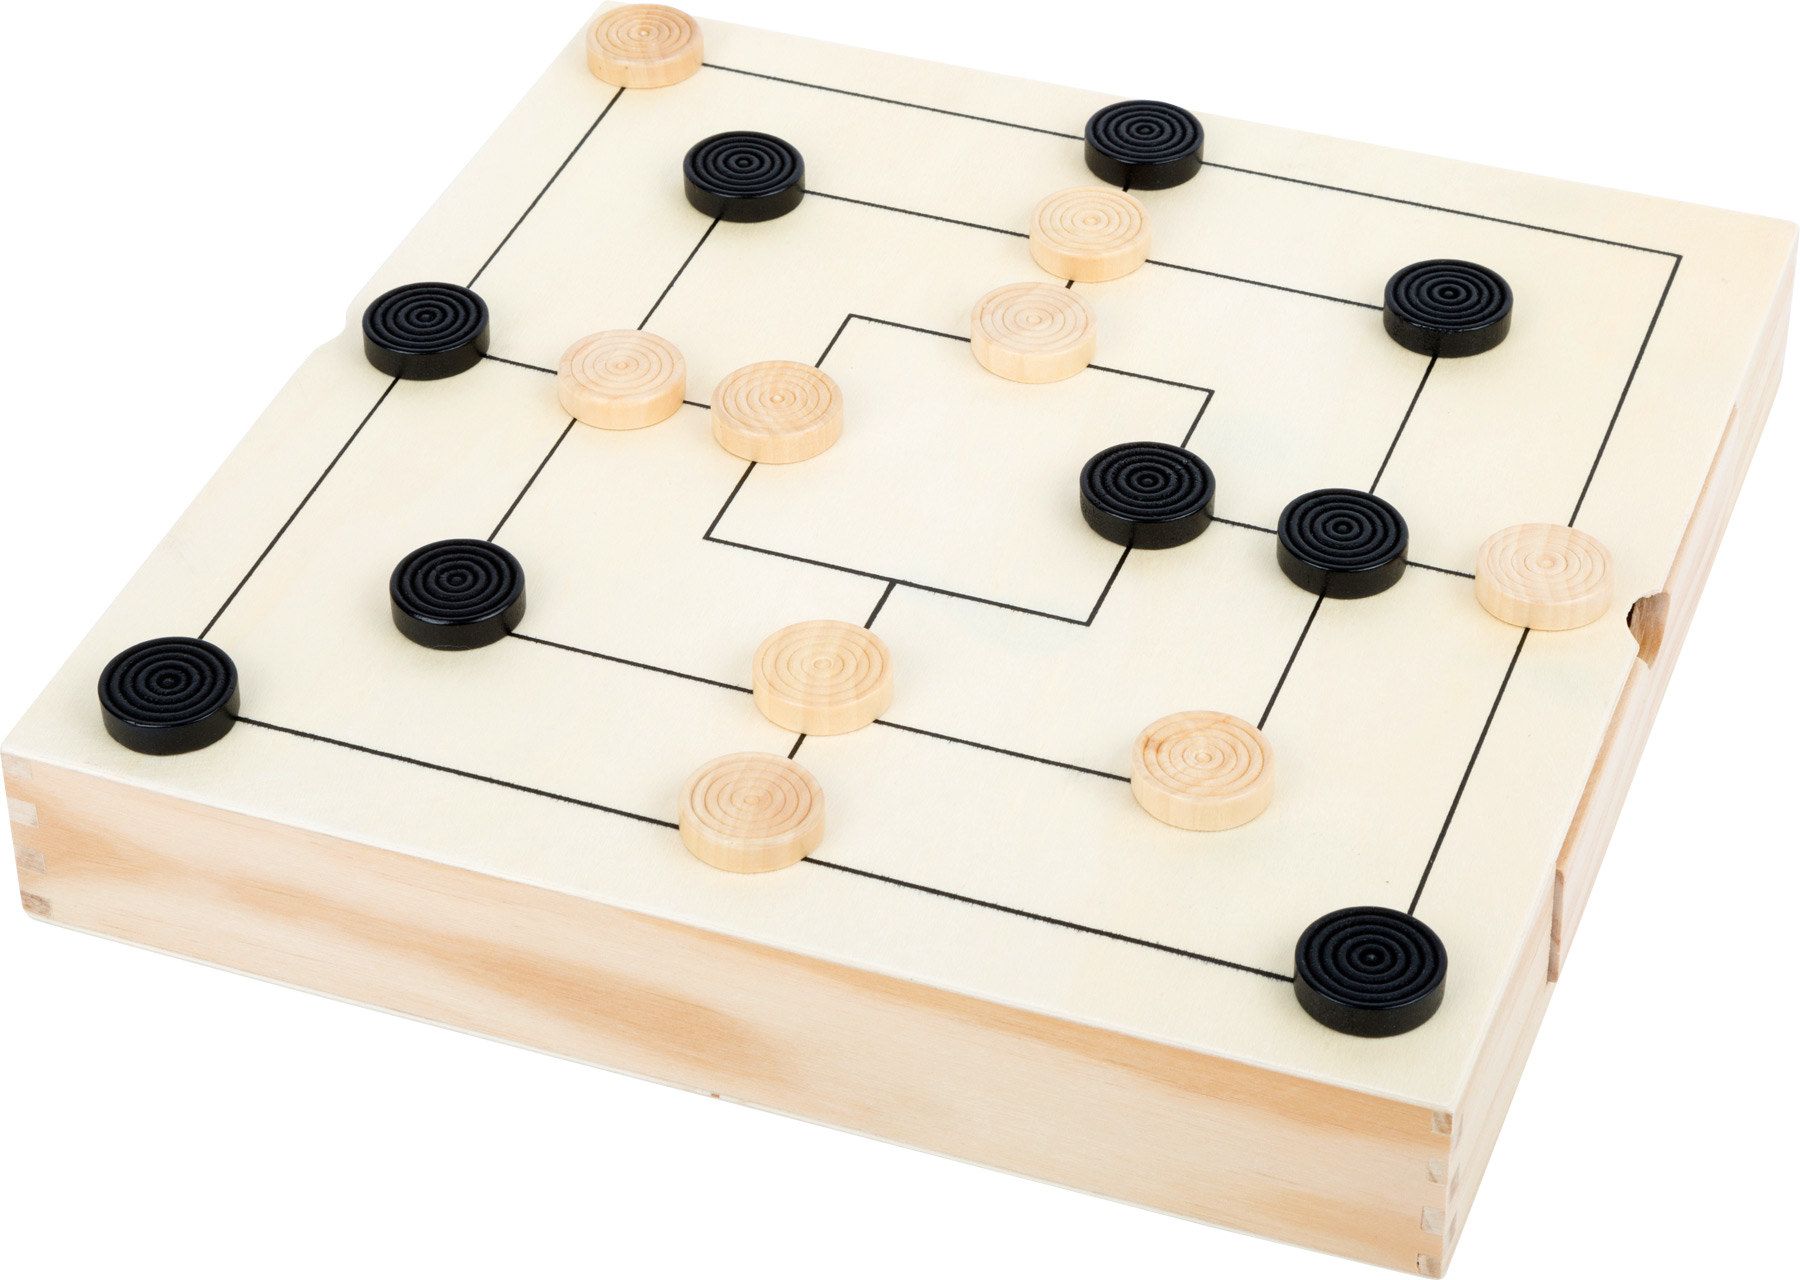 Spieleset-Schach-Dame-M-hle4O67xhB2laqyS